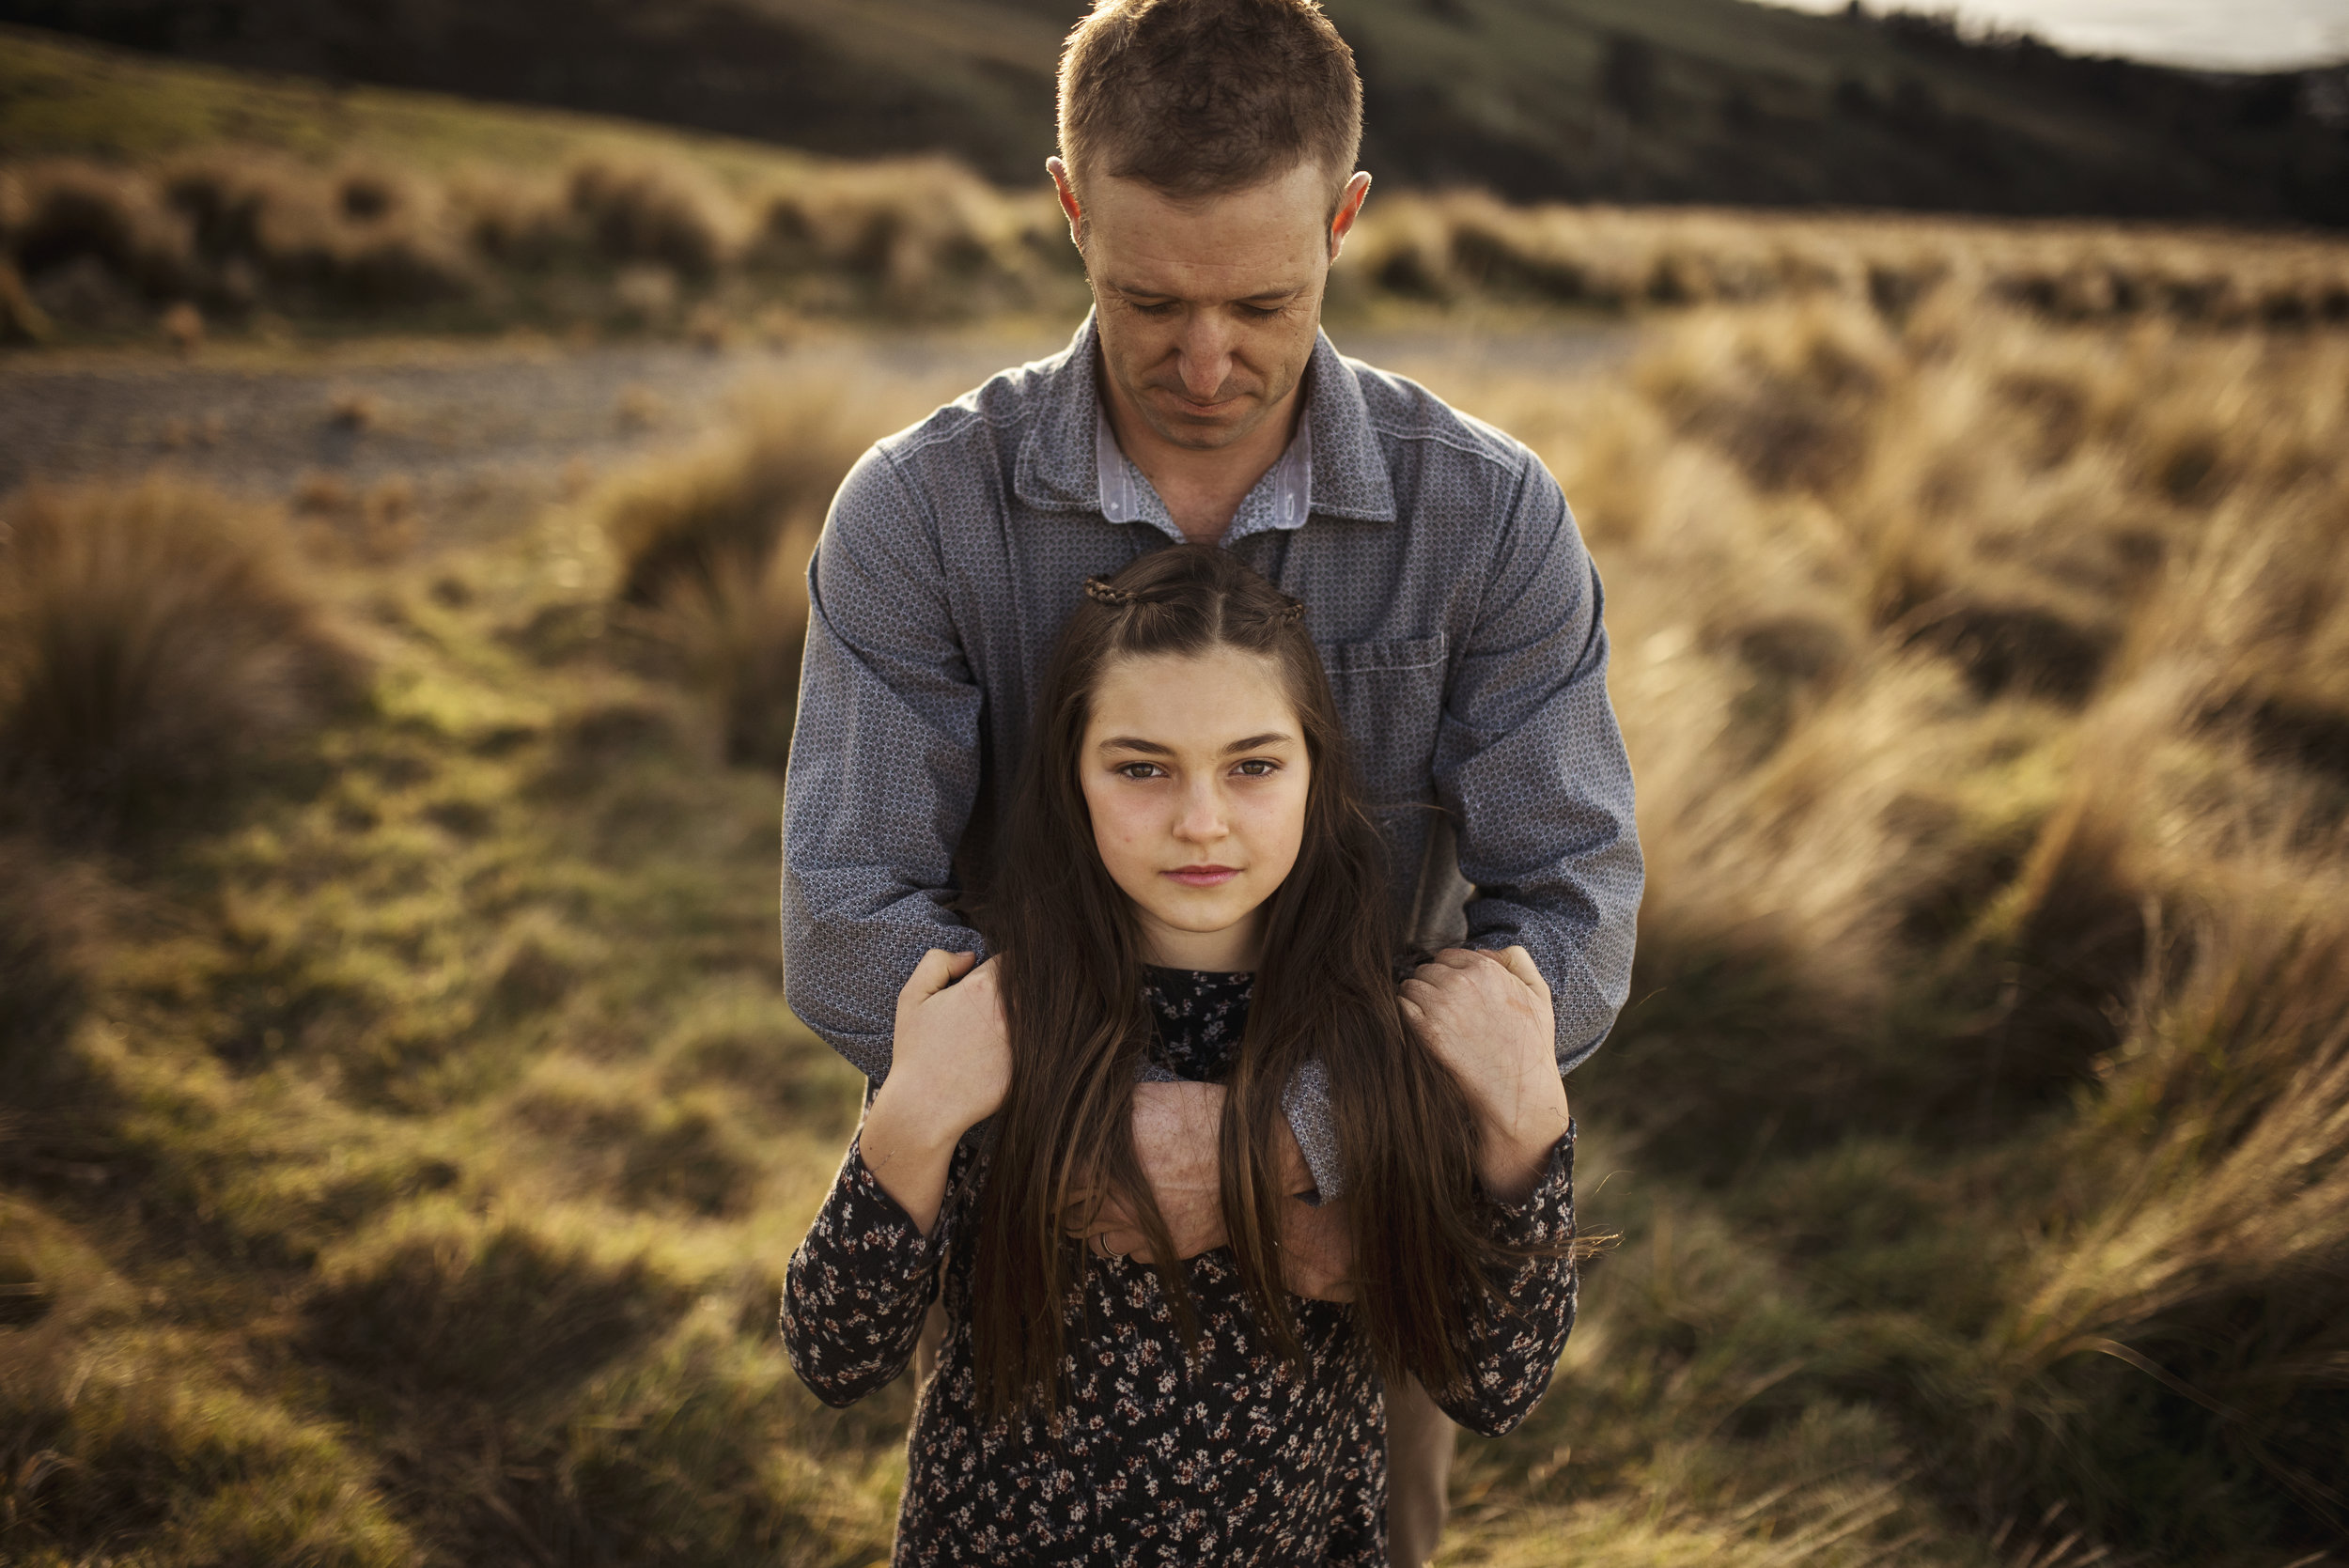 :Lifestyle family photography dad embraces daughter on a hill